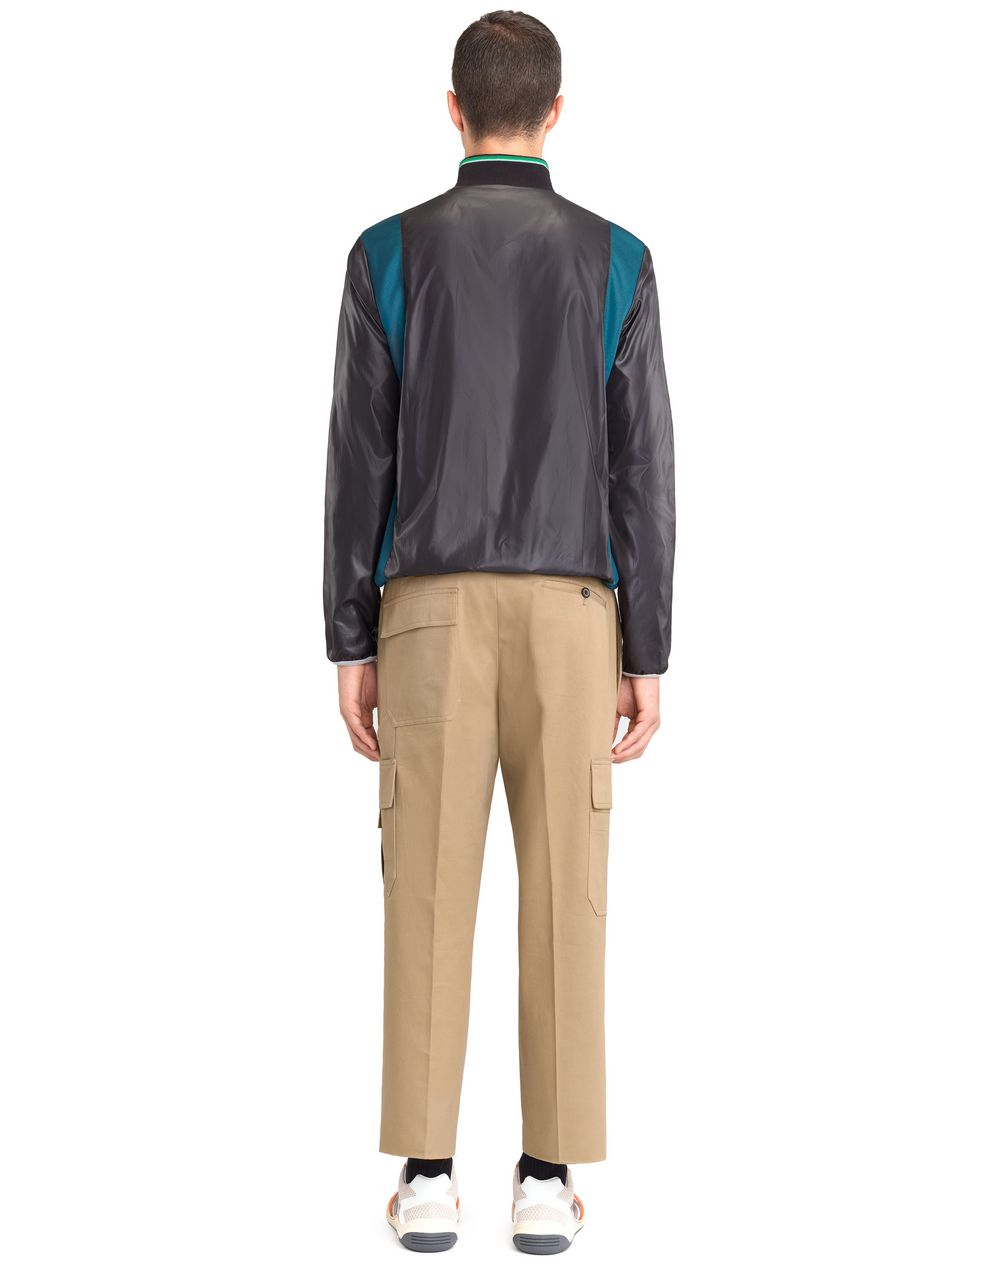 MIXED-MATERIAL JACKET - Lanvin